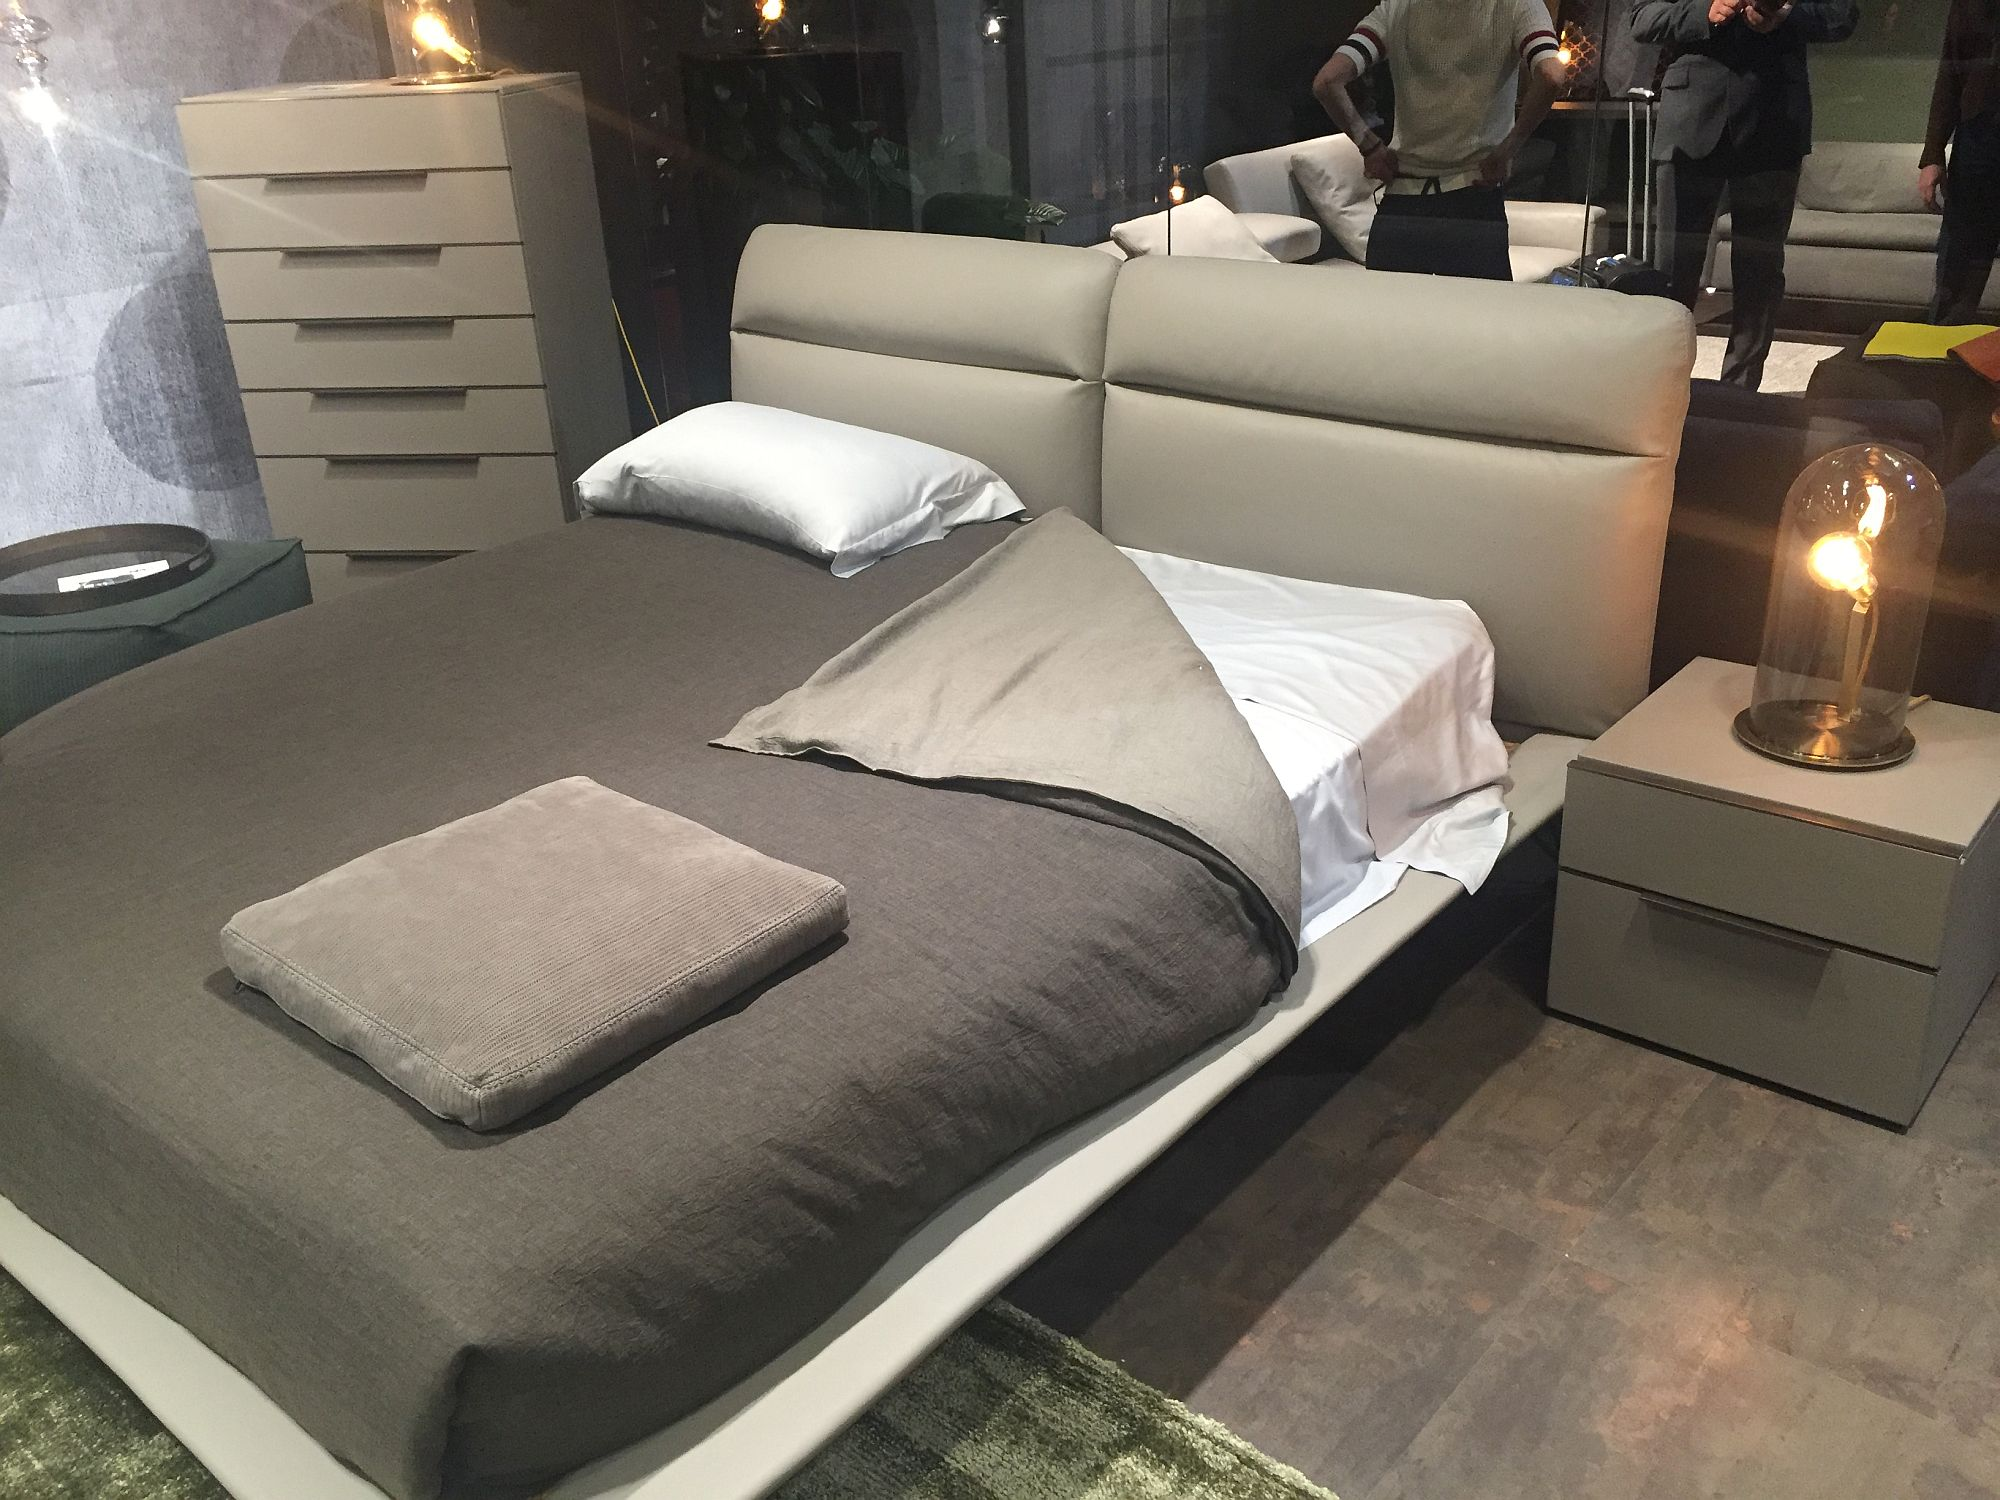 Sleek contemporary bed with comfy headboard